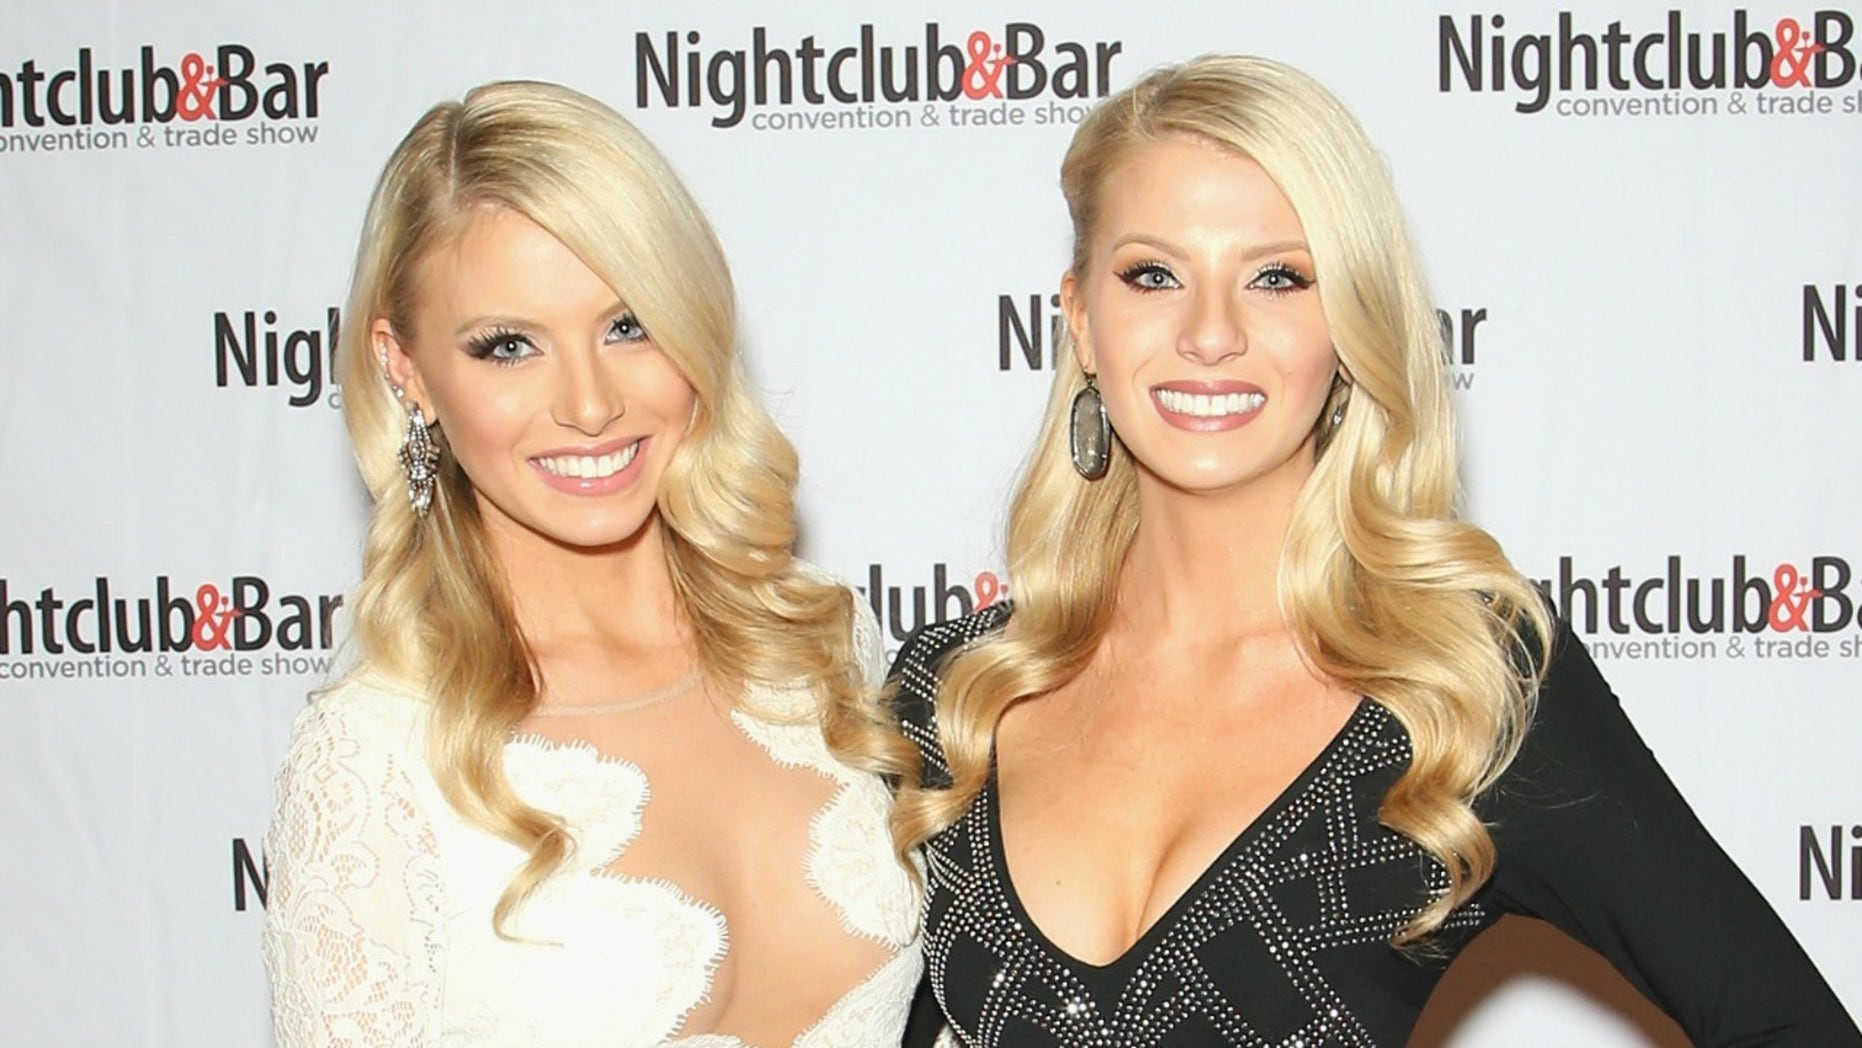 LAS VEGAS, NV - MARCH 08:  Television personalities Emily Ferguson (L) and Haley Ferguson attend the 31st annual Nightclub & Bar Convention and Trade Show on March 8, 2016 in Las Vegas, Nevada.  (Photo by Gabe Ginsberg/Getty Images for Nightclub & Bar Media Group)